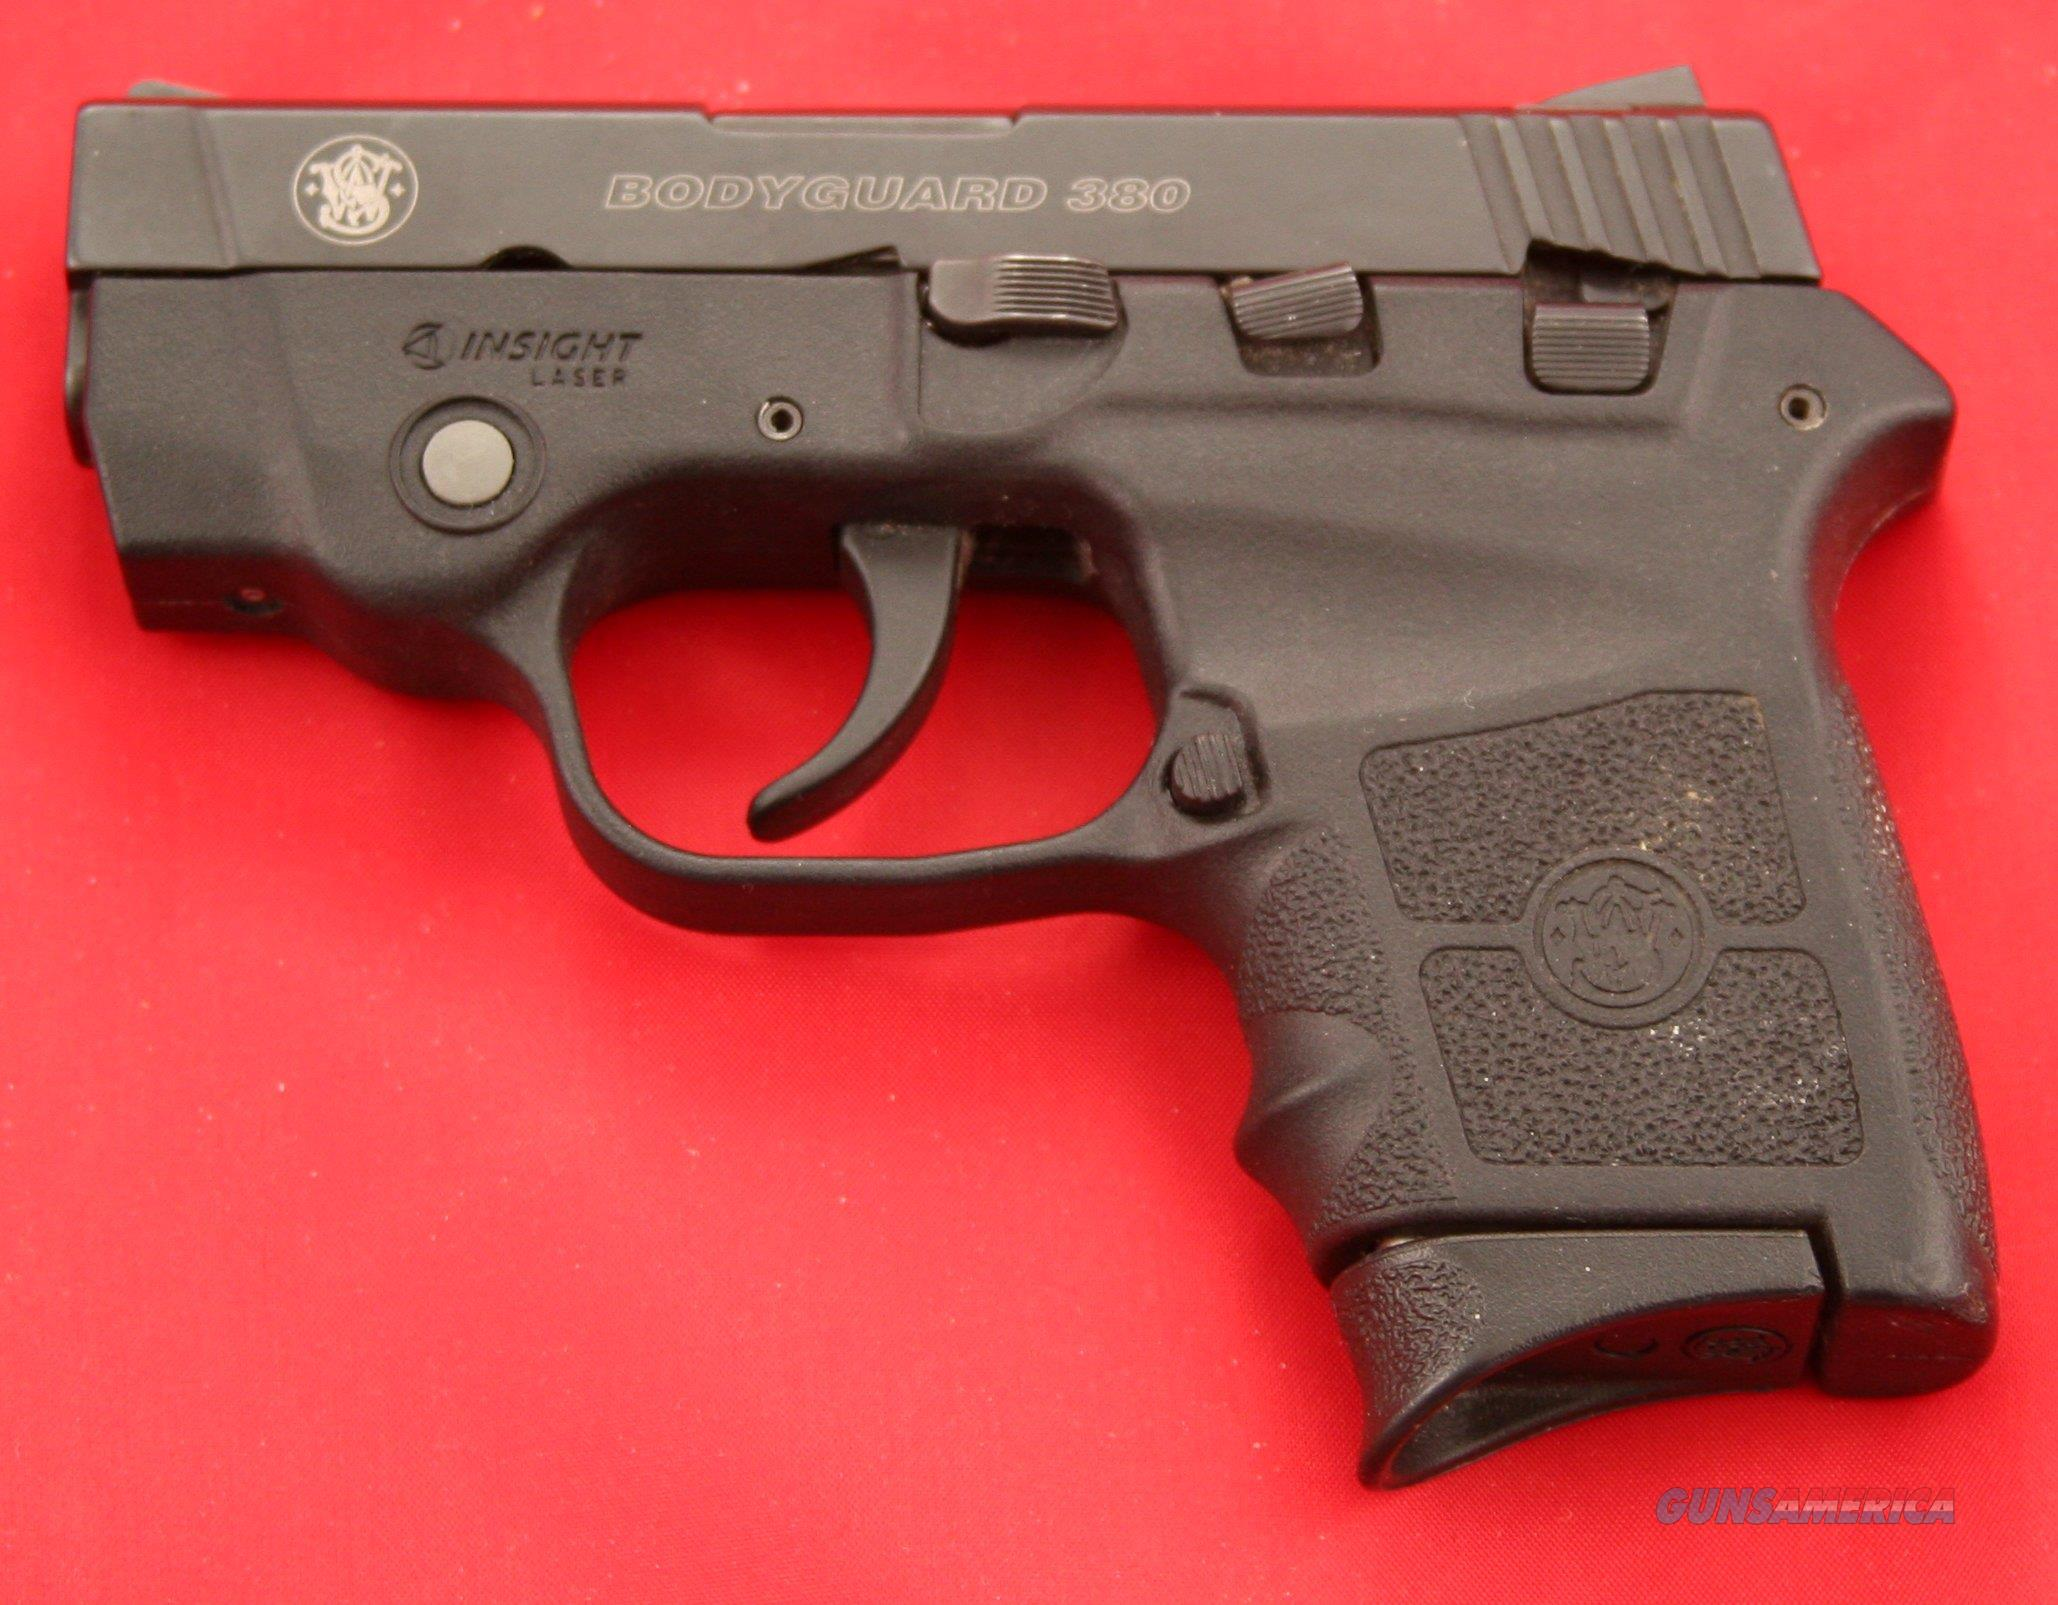 LIKE NEW Smith & Wesson Bodyguard 380 With 2 5/8 In. Barrel And Laser Sight  .380 ACP  Guns > Pistols > Smith & Wesson Pistols - Autos > Polymer Frame